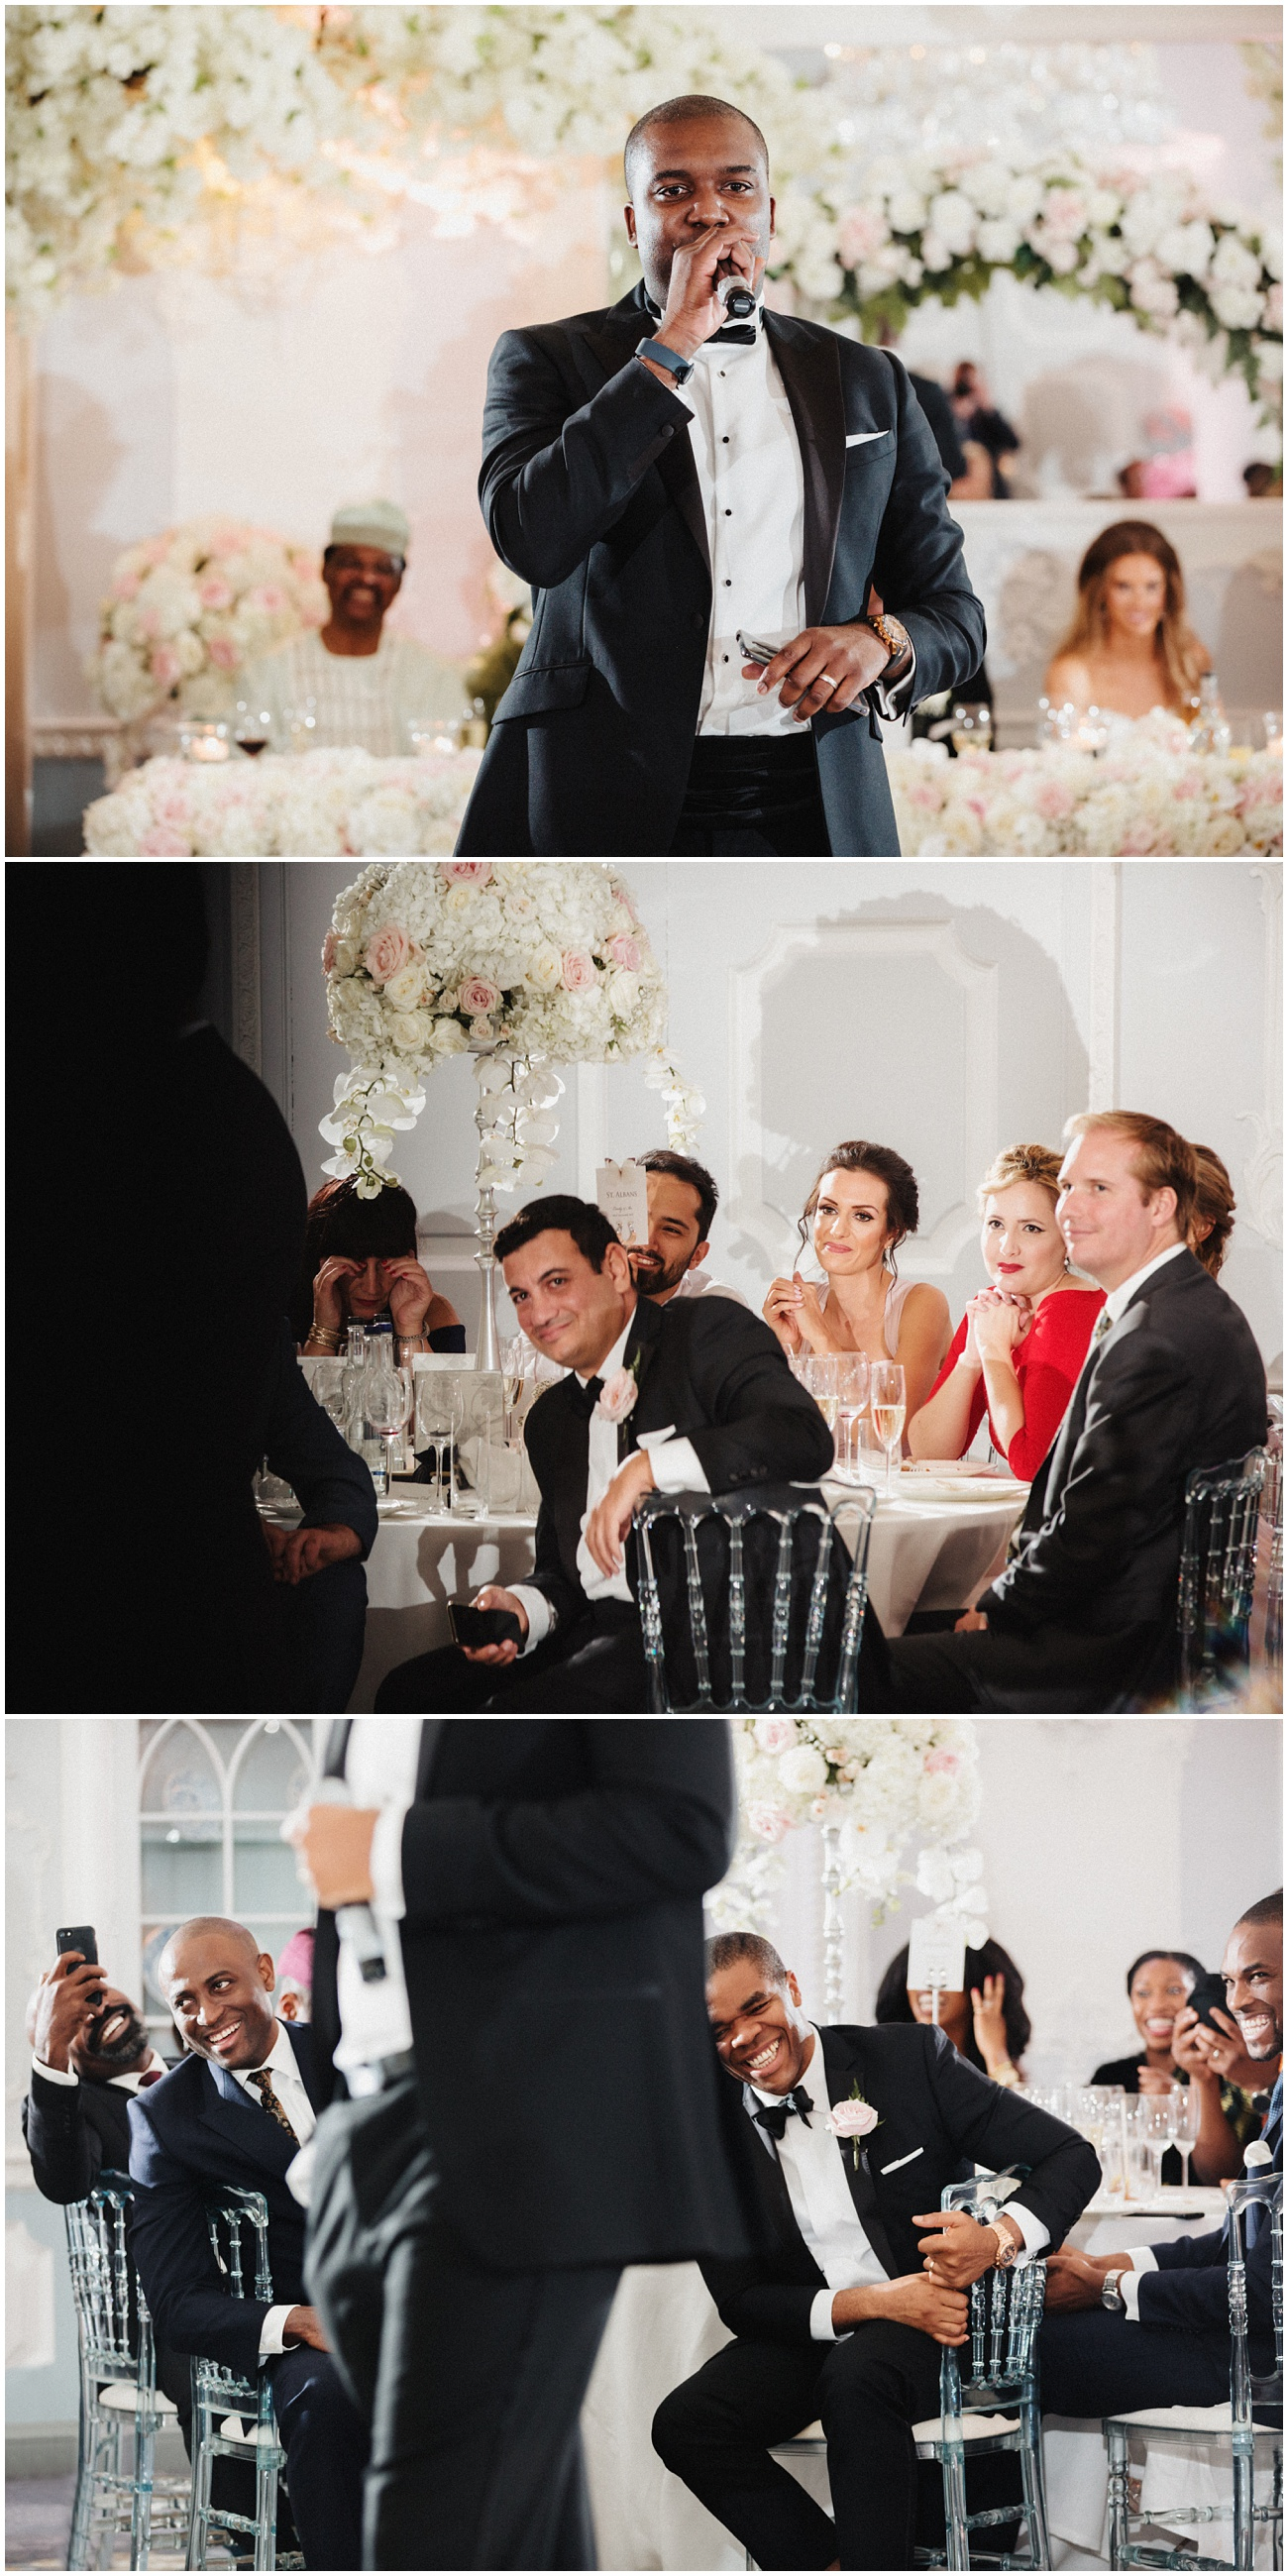 The best man gives his humorous speech to happy wedding guests